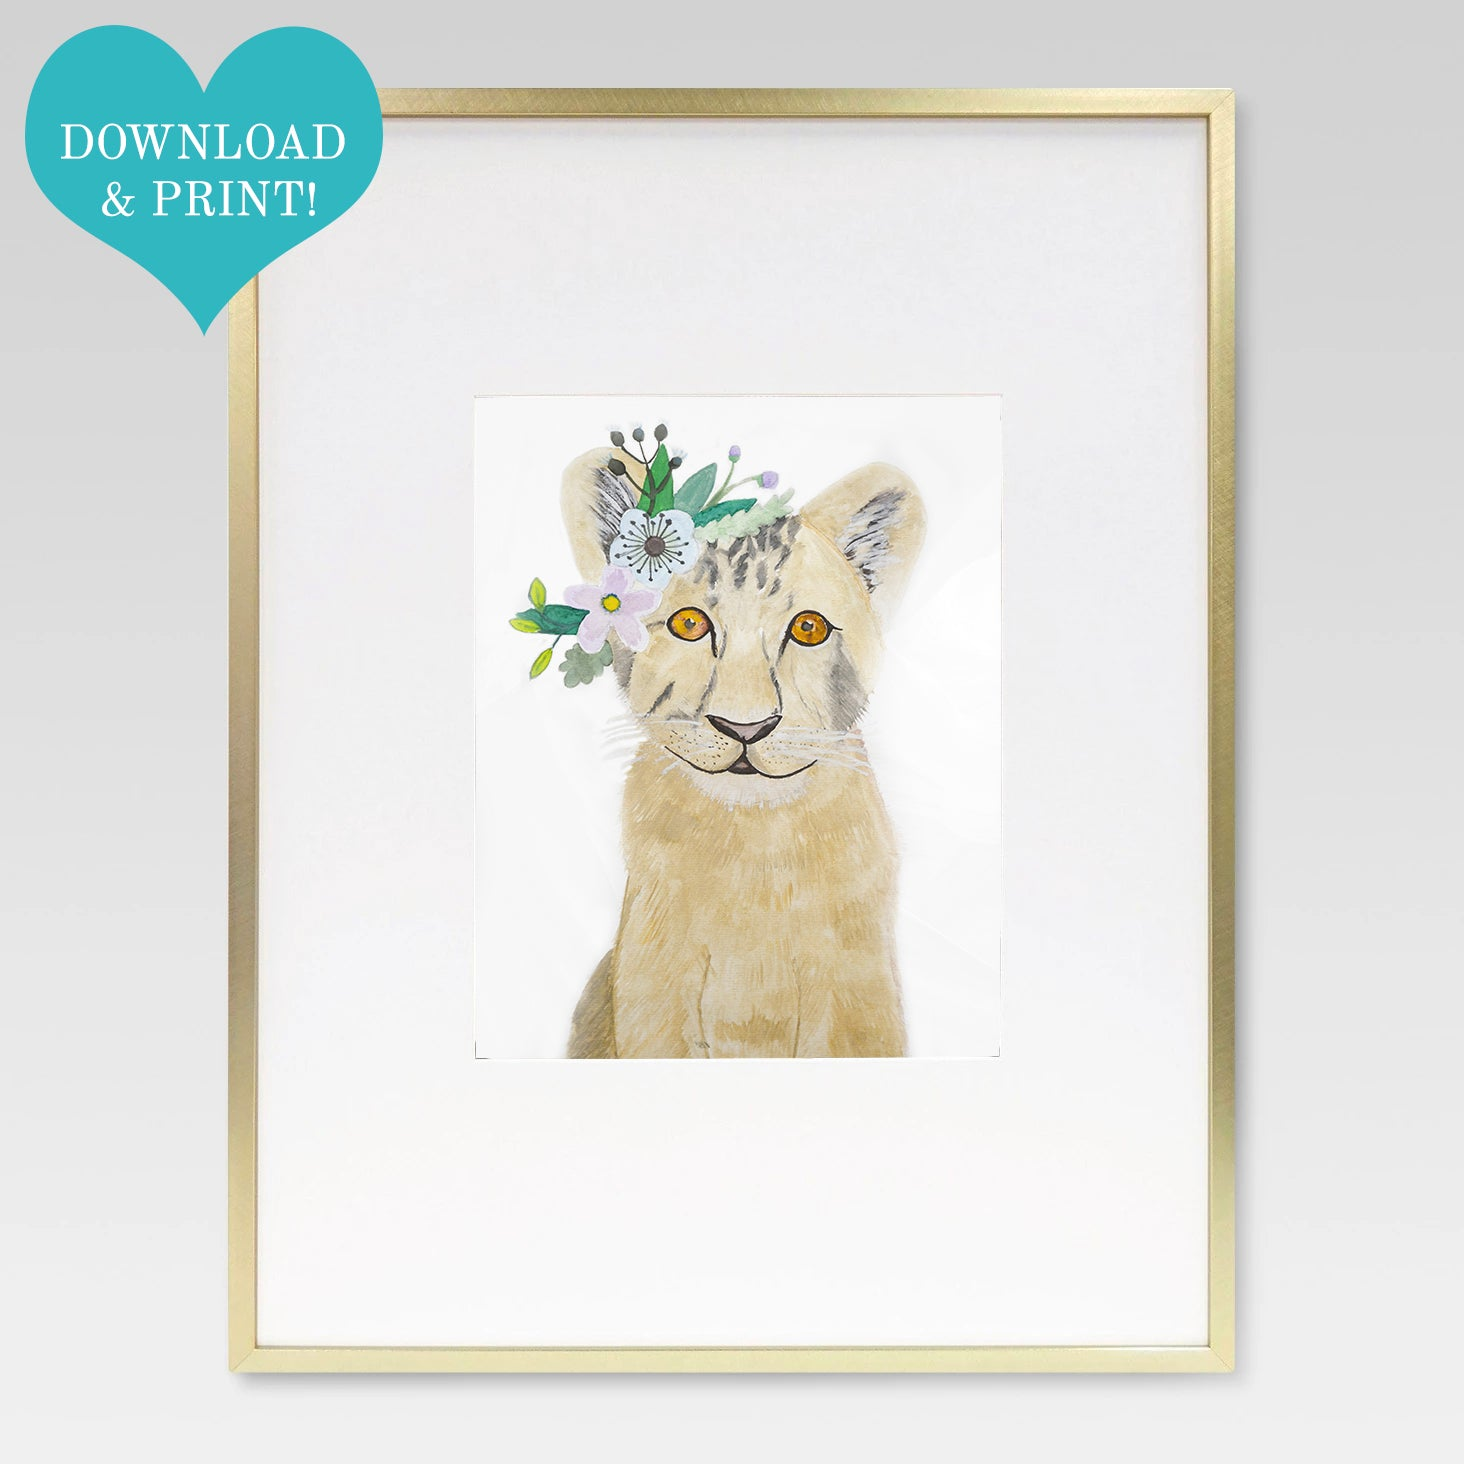 Boho Baby Lion Cub Watercolor Print - 8 x 10 Downloadable